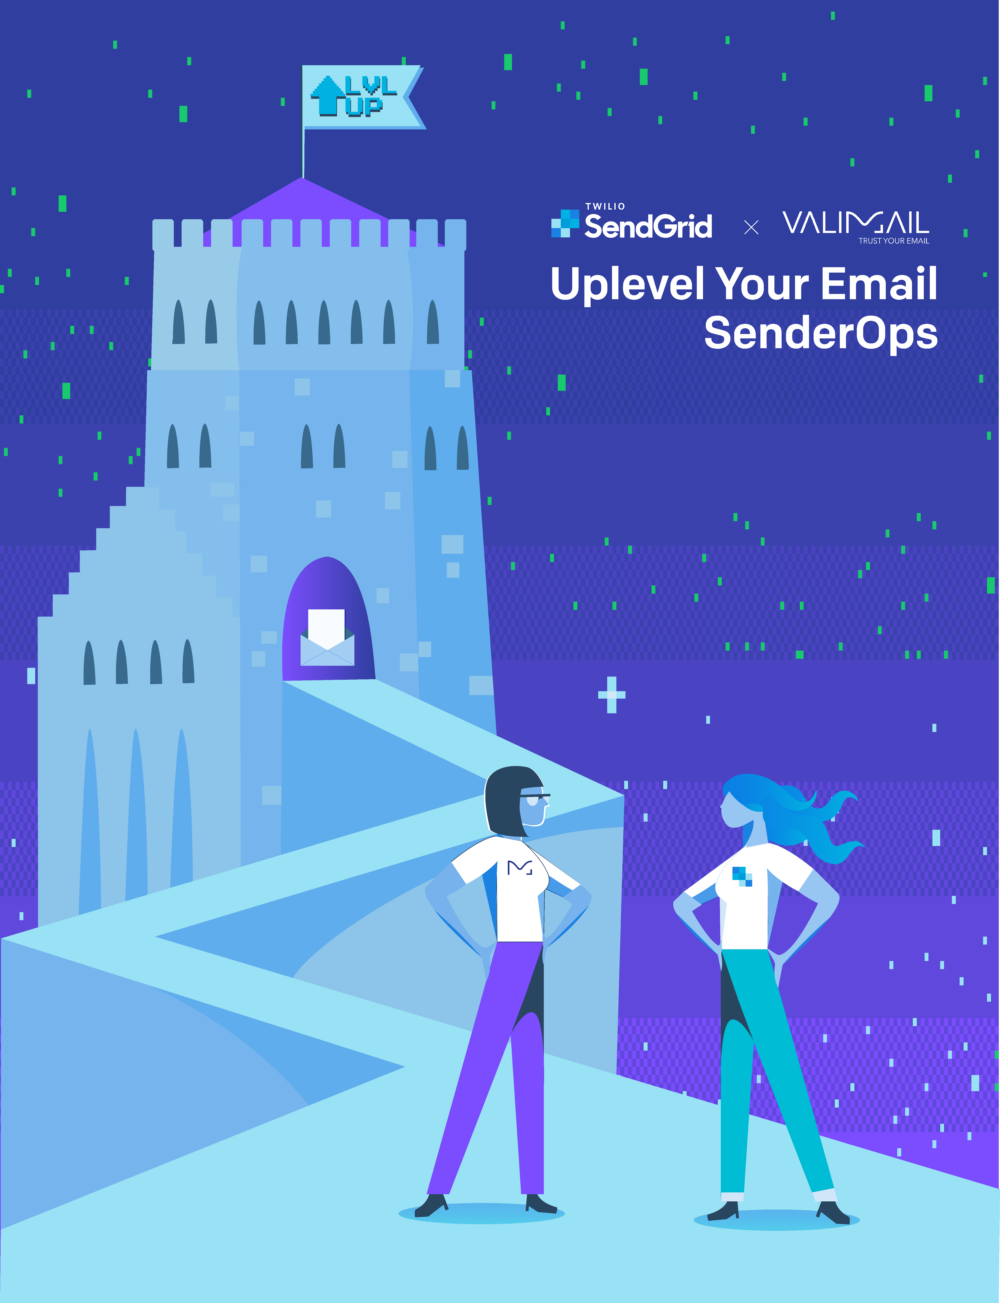 Guide to uplevel your email senderops